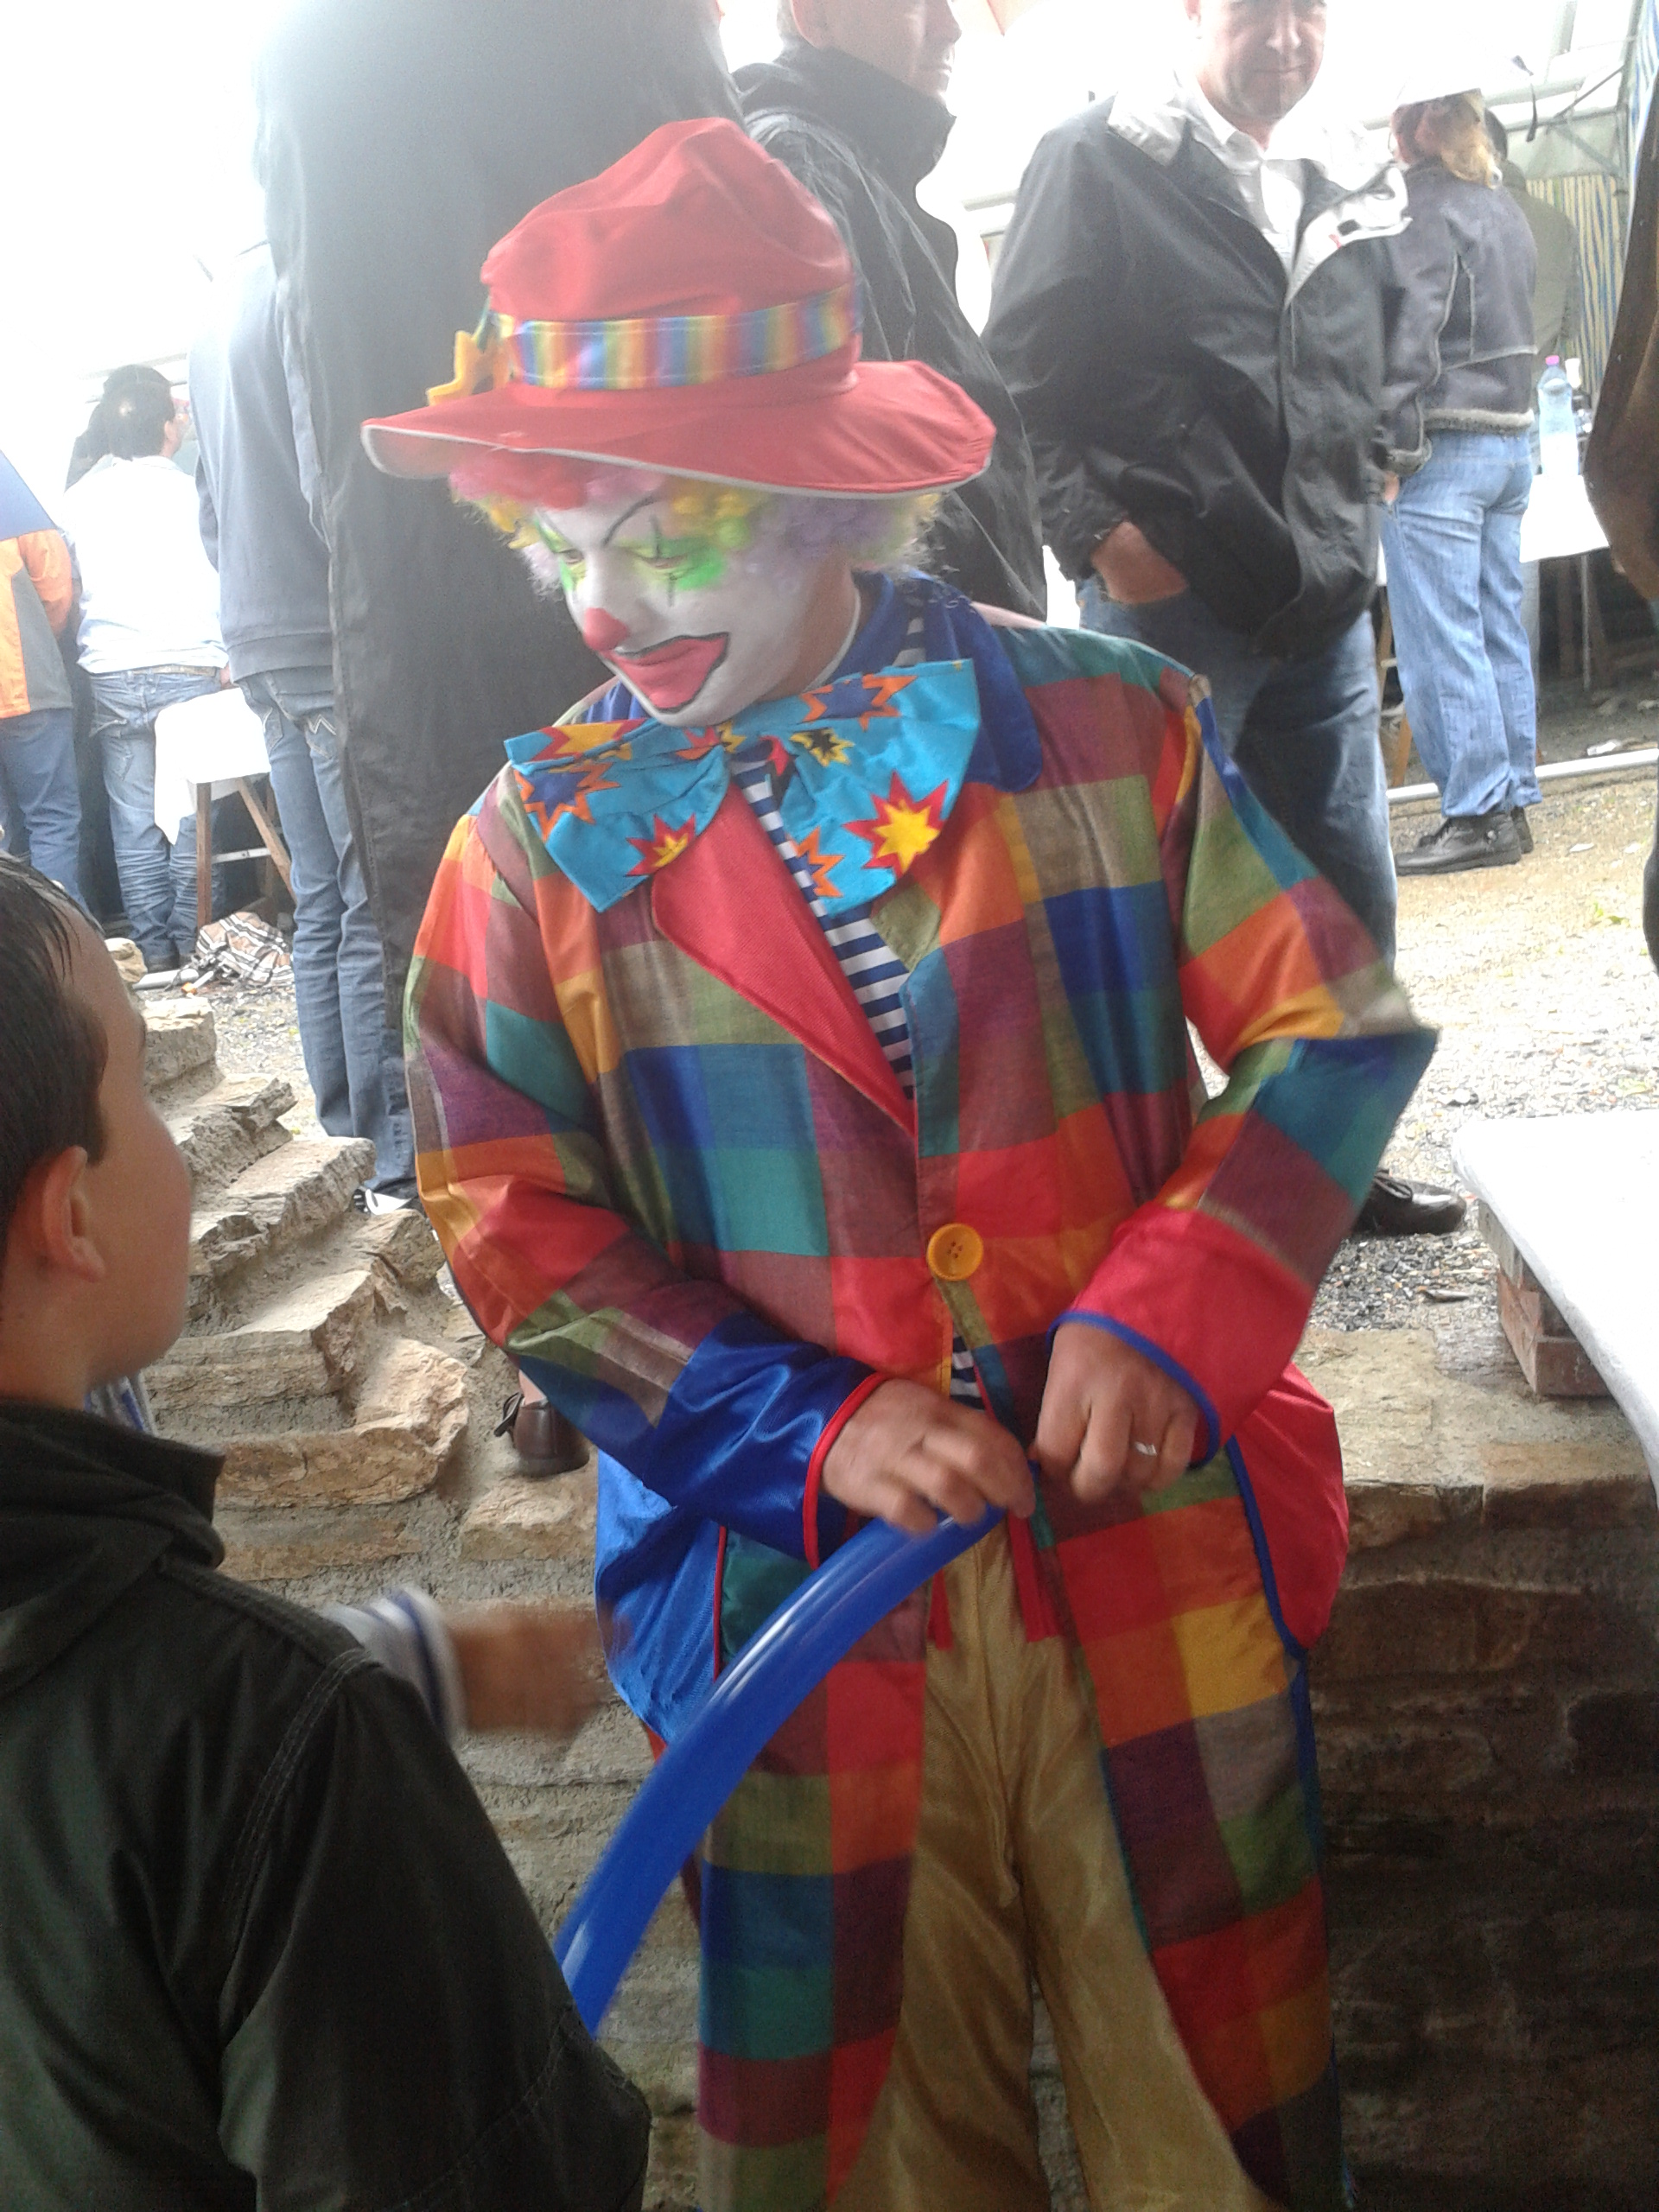 Dyno le clown en animation ambulante Les escoussens Tarn